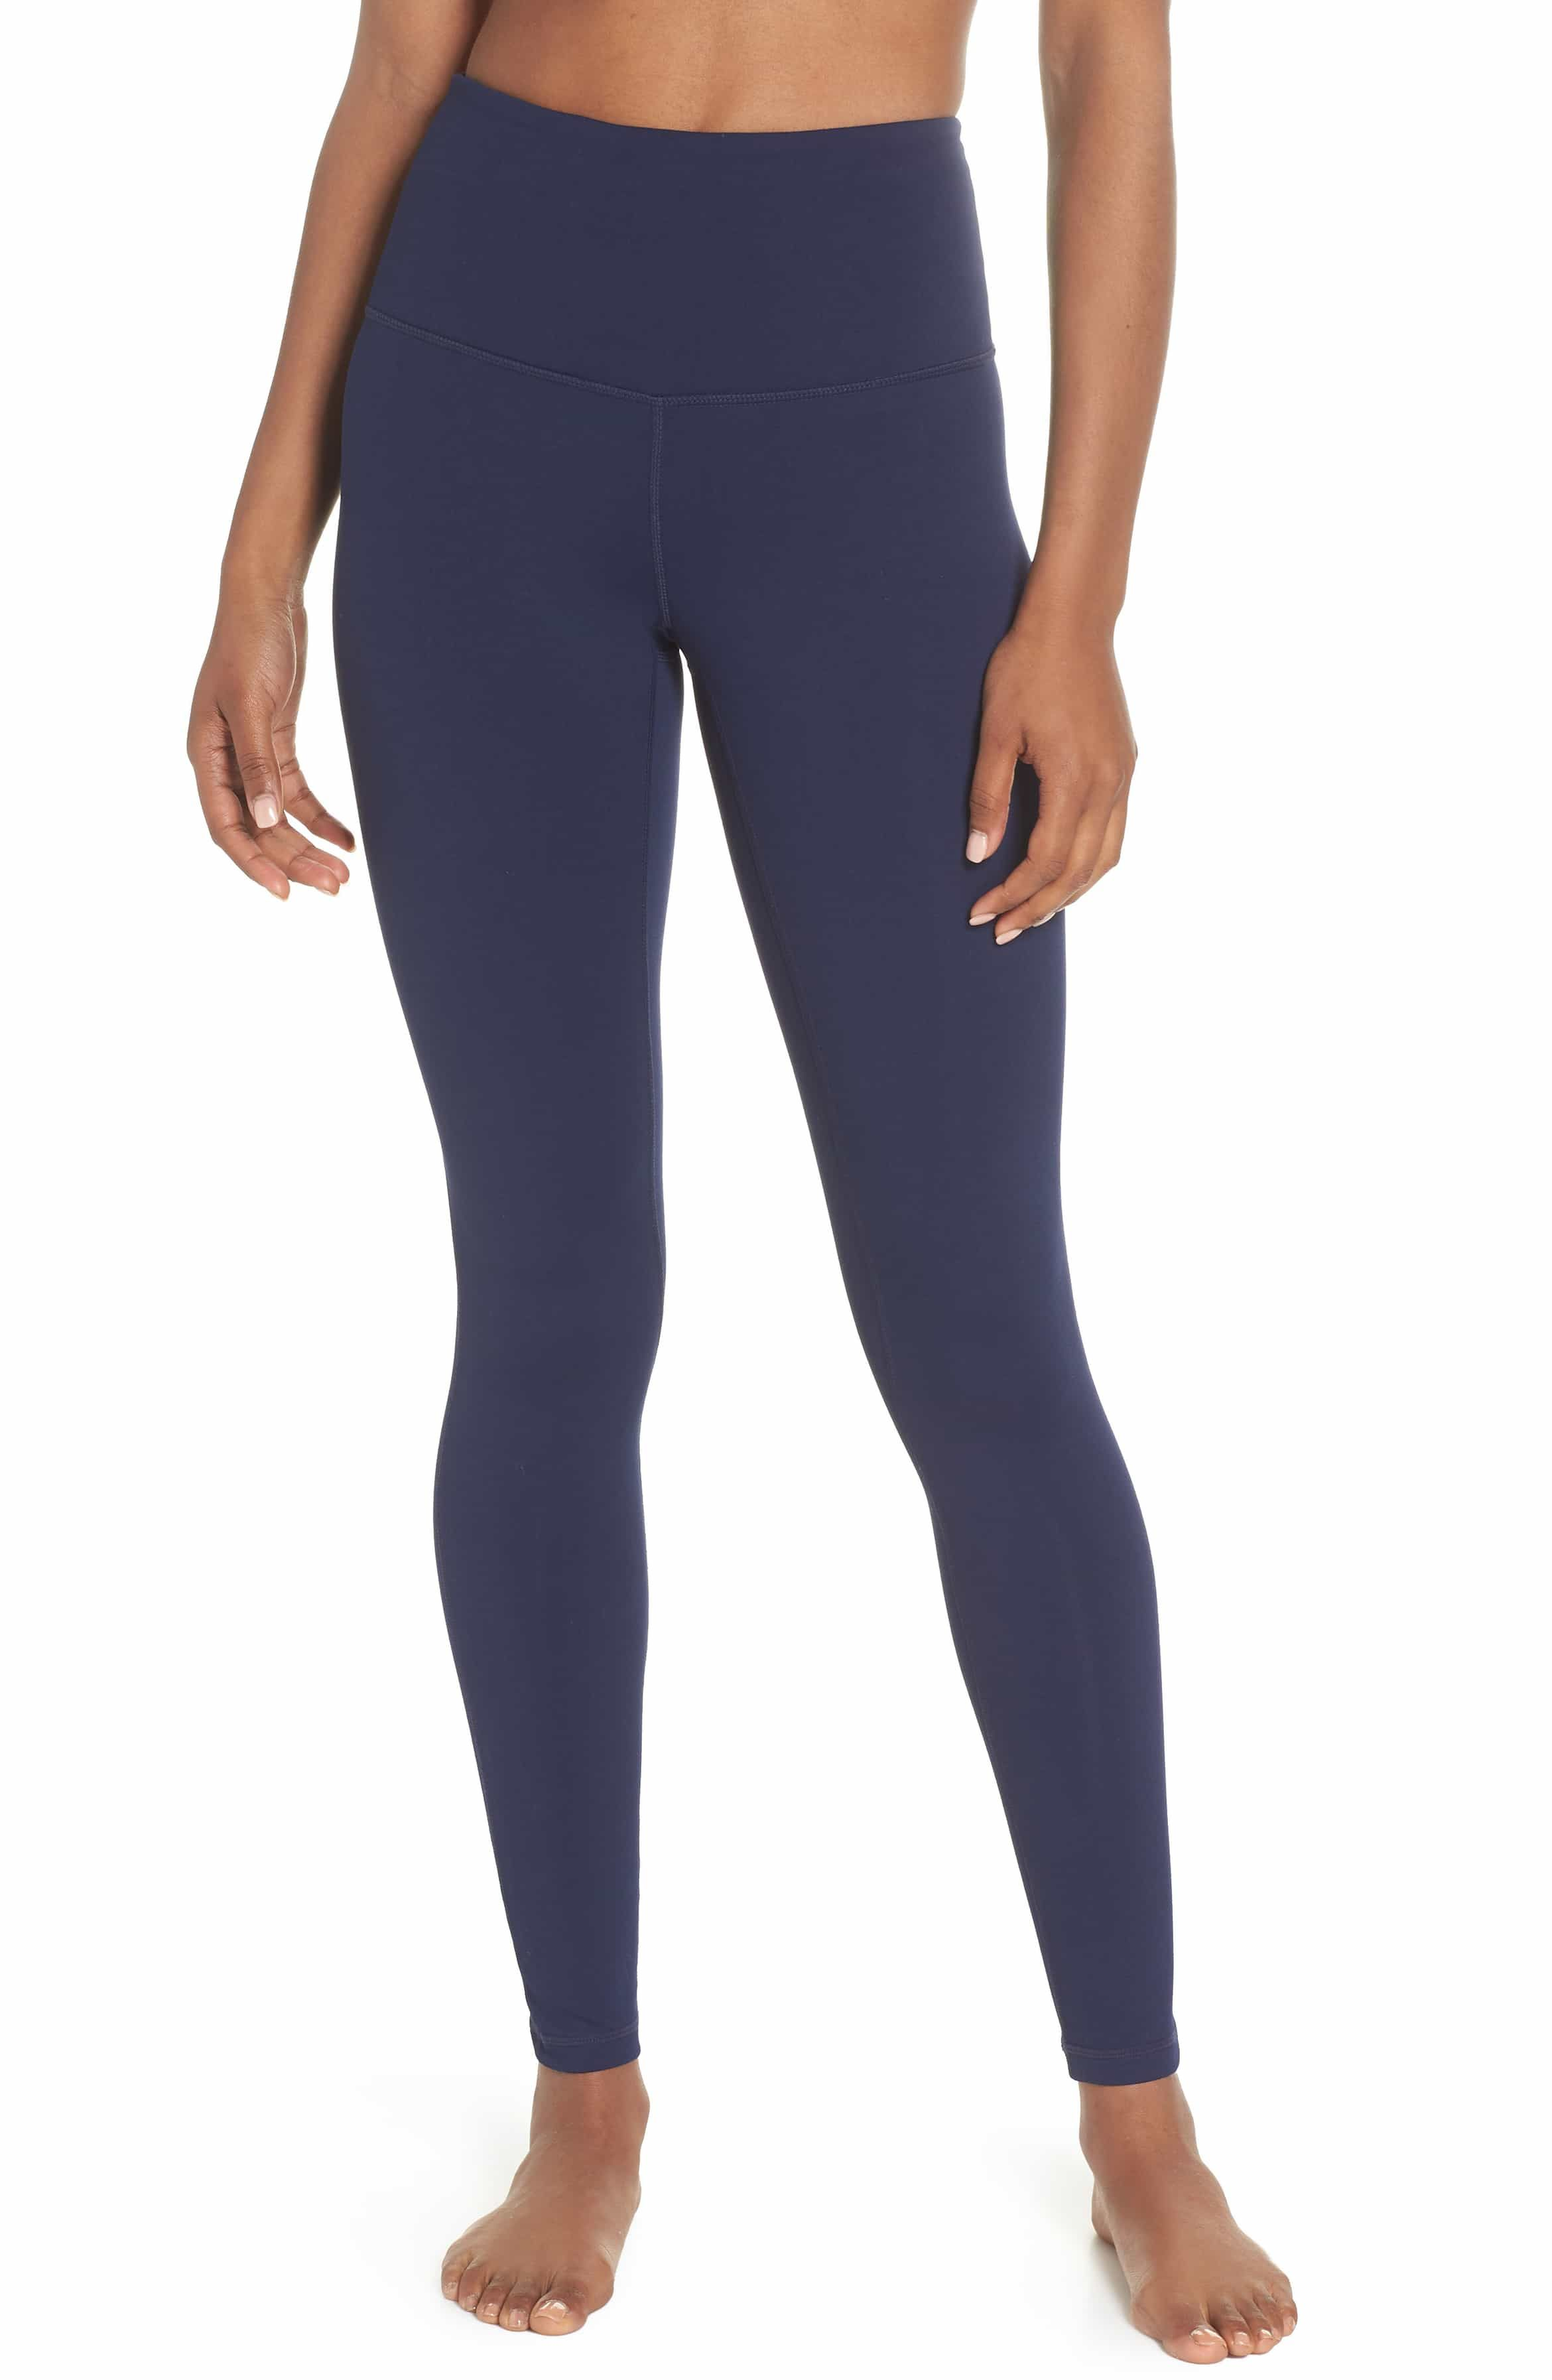 59e7add74623e Live In High Waist Leggings ZELLA Price $54. Free Shipping Moisture-wicking  Zeltek construction keeps you cool as your workout warms up in stretchy, ...